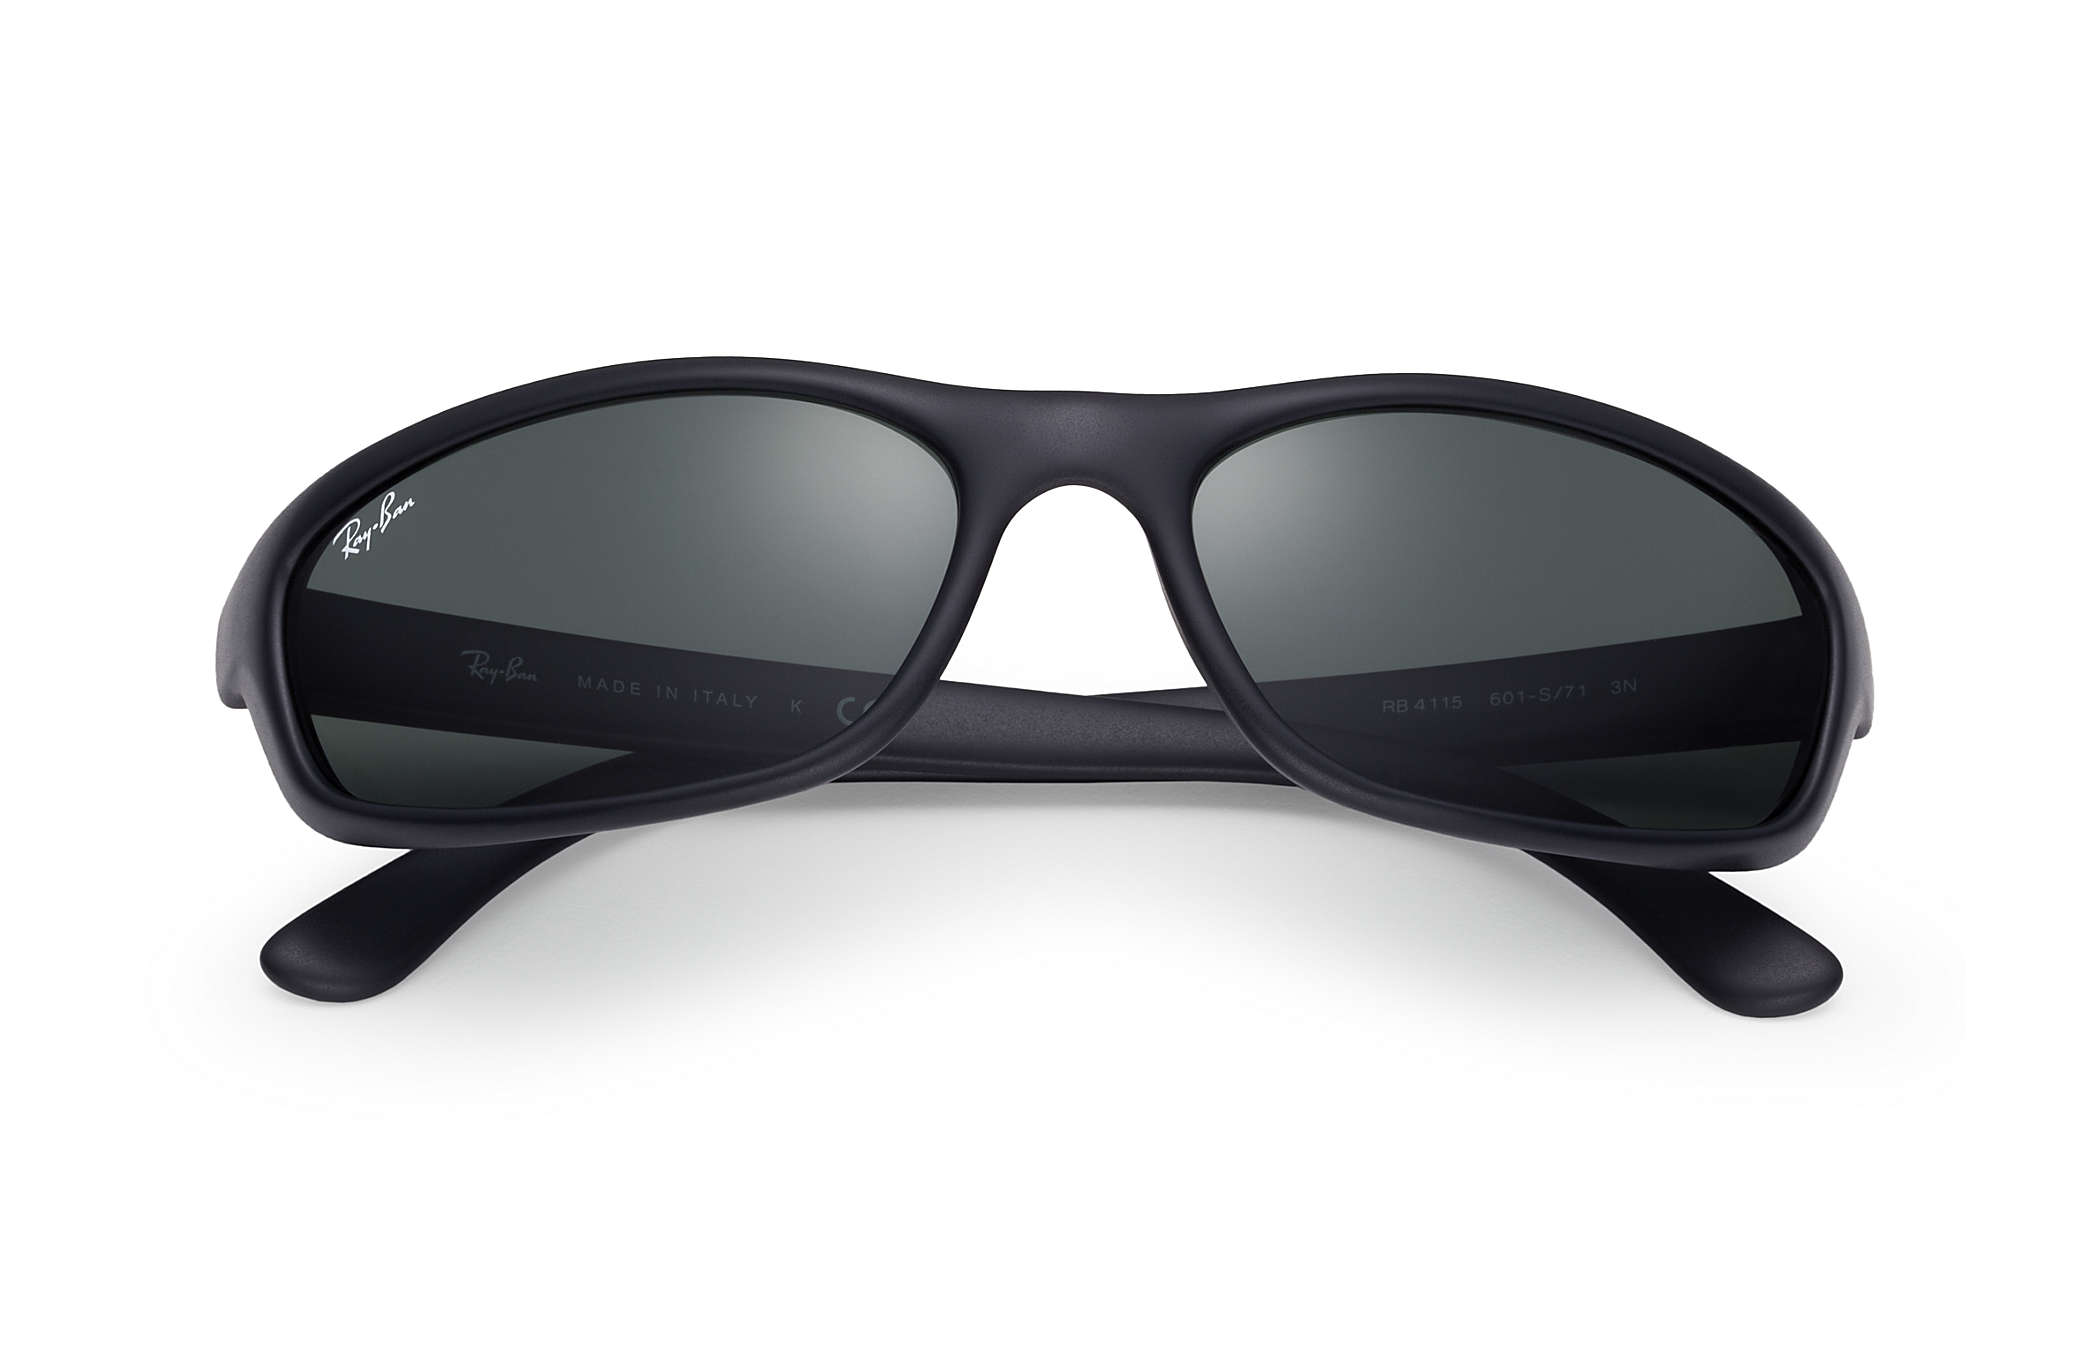 d5dccb1390 Ray Ban Sunglasses Rb4115 601s71 « One More Soul